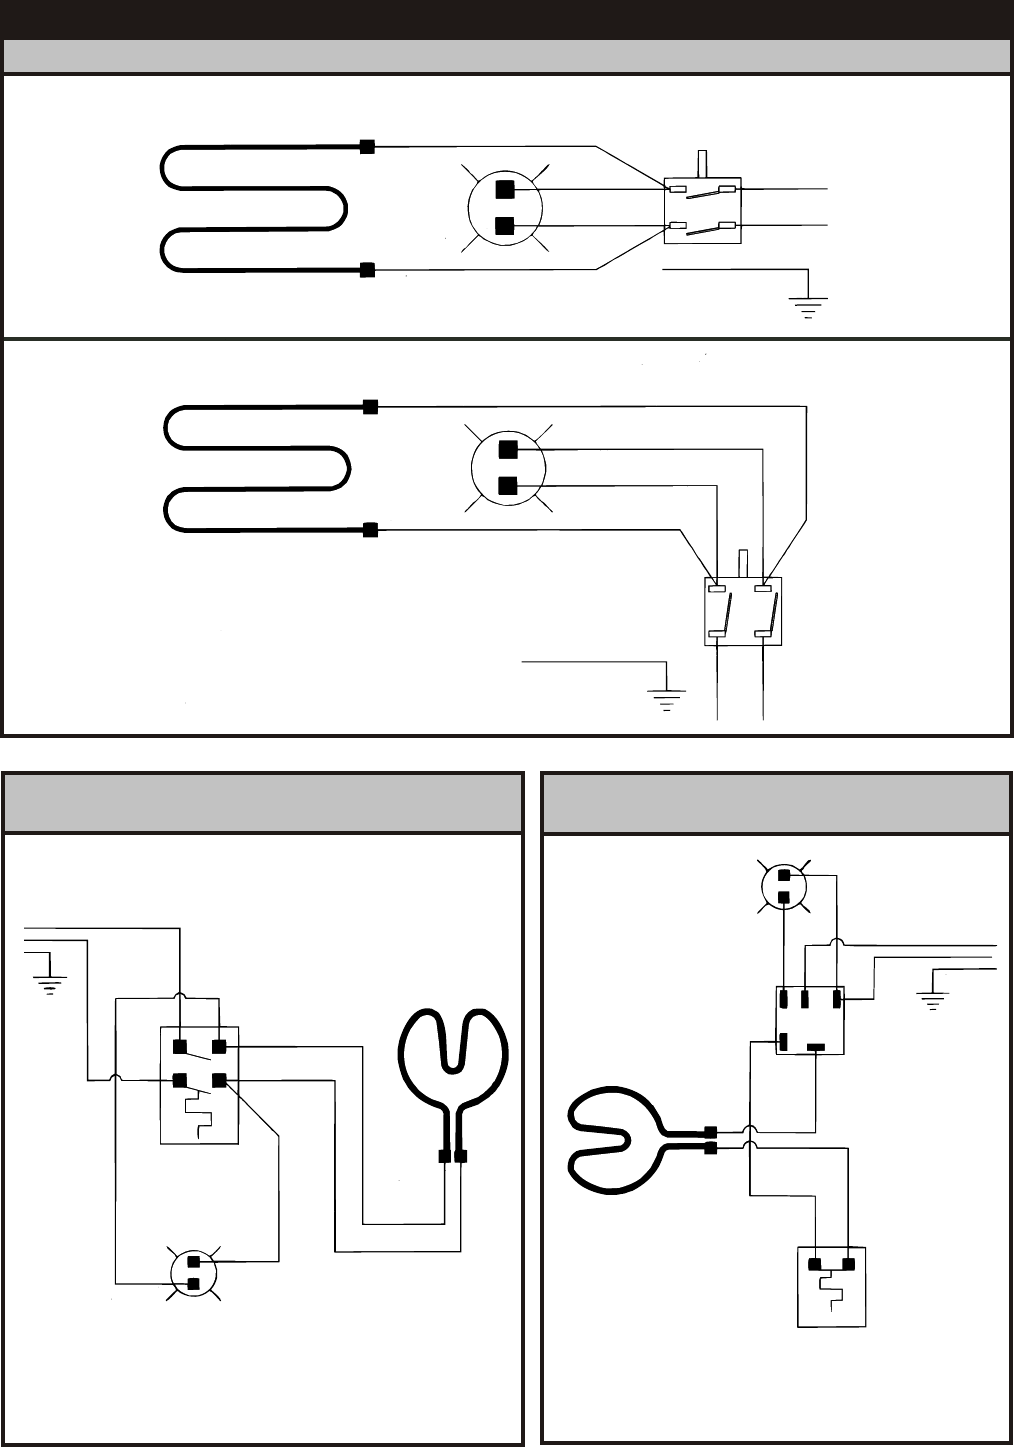 ca7b3e15 4662 41e6 adbd 34fa5e64b3e9 bg8 page 8 of apw wyott food warmer hfw 1 user guide manualsonline com robertshaw infinite switch wiring diagram at reclaimingppi.co